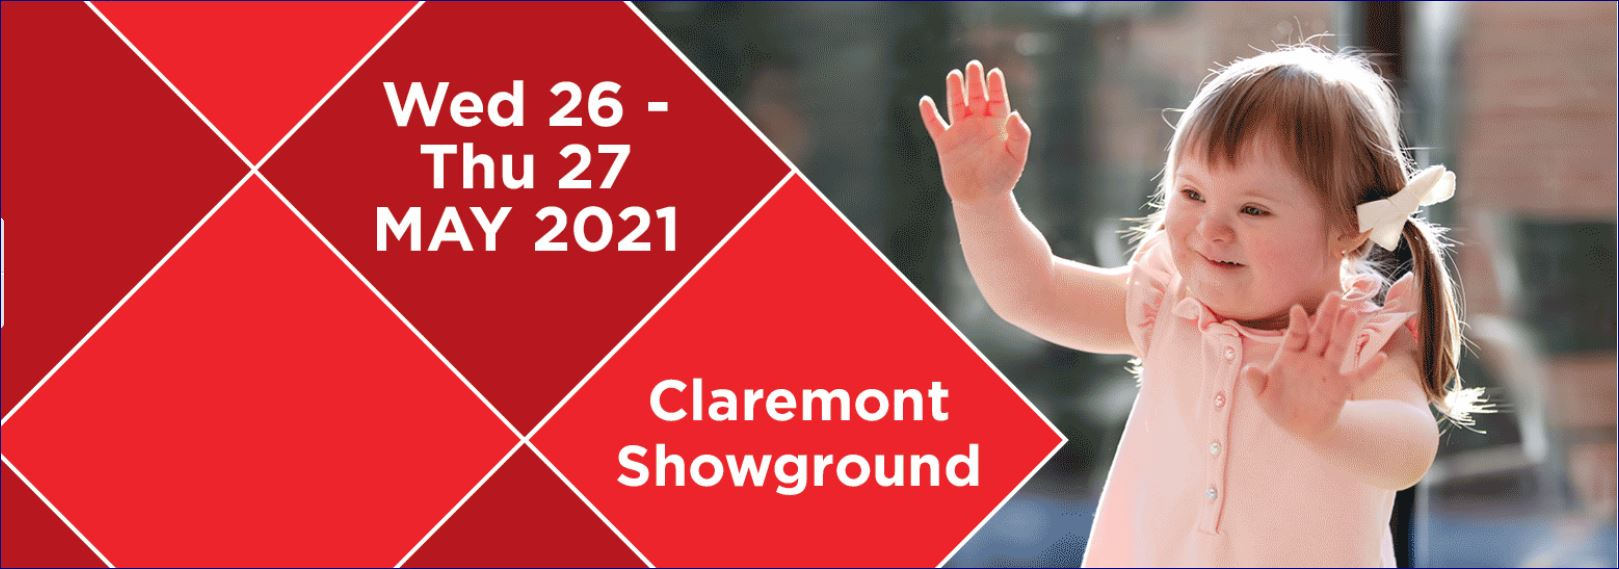 Banner with red squares and happy toddler Text says: Wed 26-Thu 27 May 2021, Claremont Showground